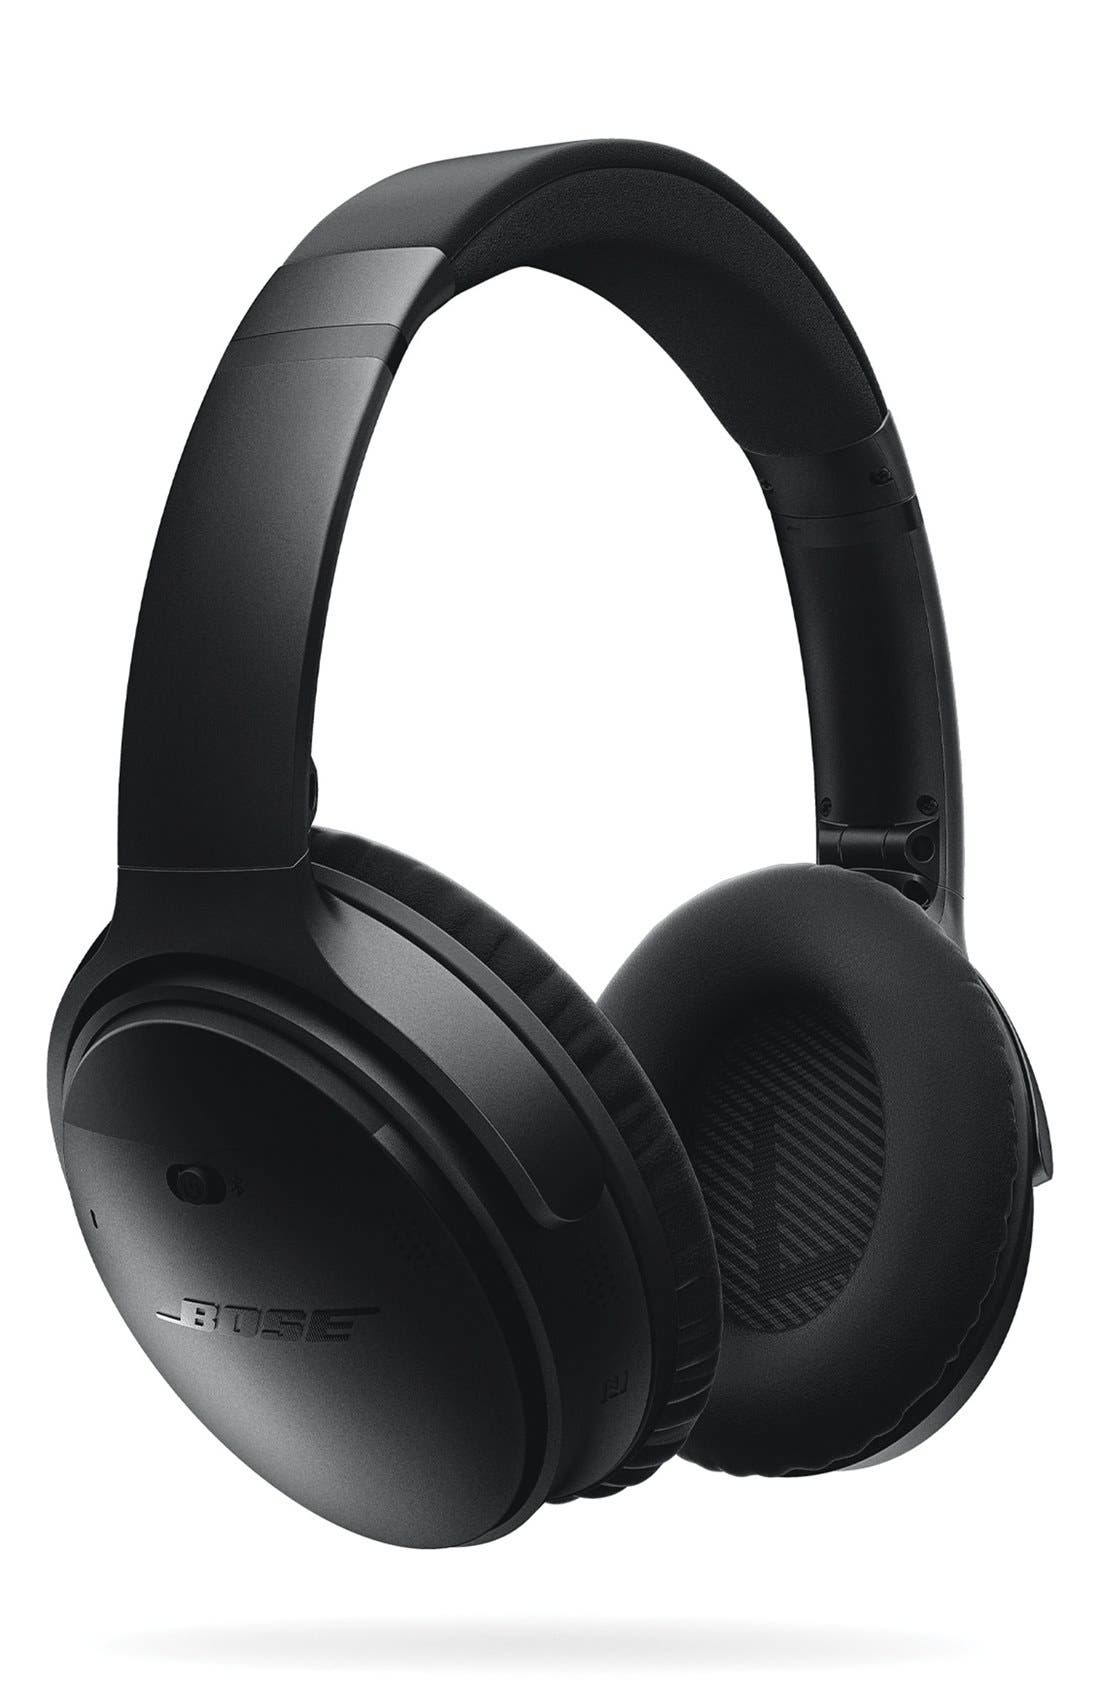 BOSE<SUP>®</SUP> QuietComfort<sup>®</sup> 35 Acoustic Noise Cancelling<sup>®</sup> Bluetooth<sup>®</sup> Headphones